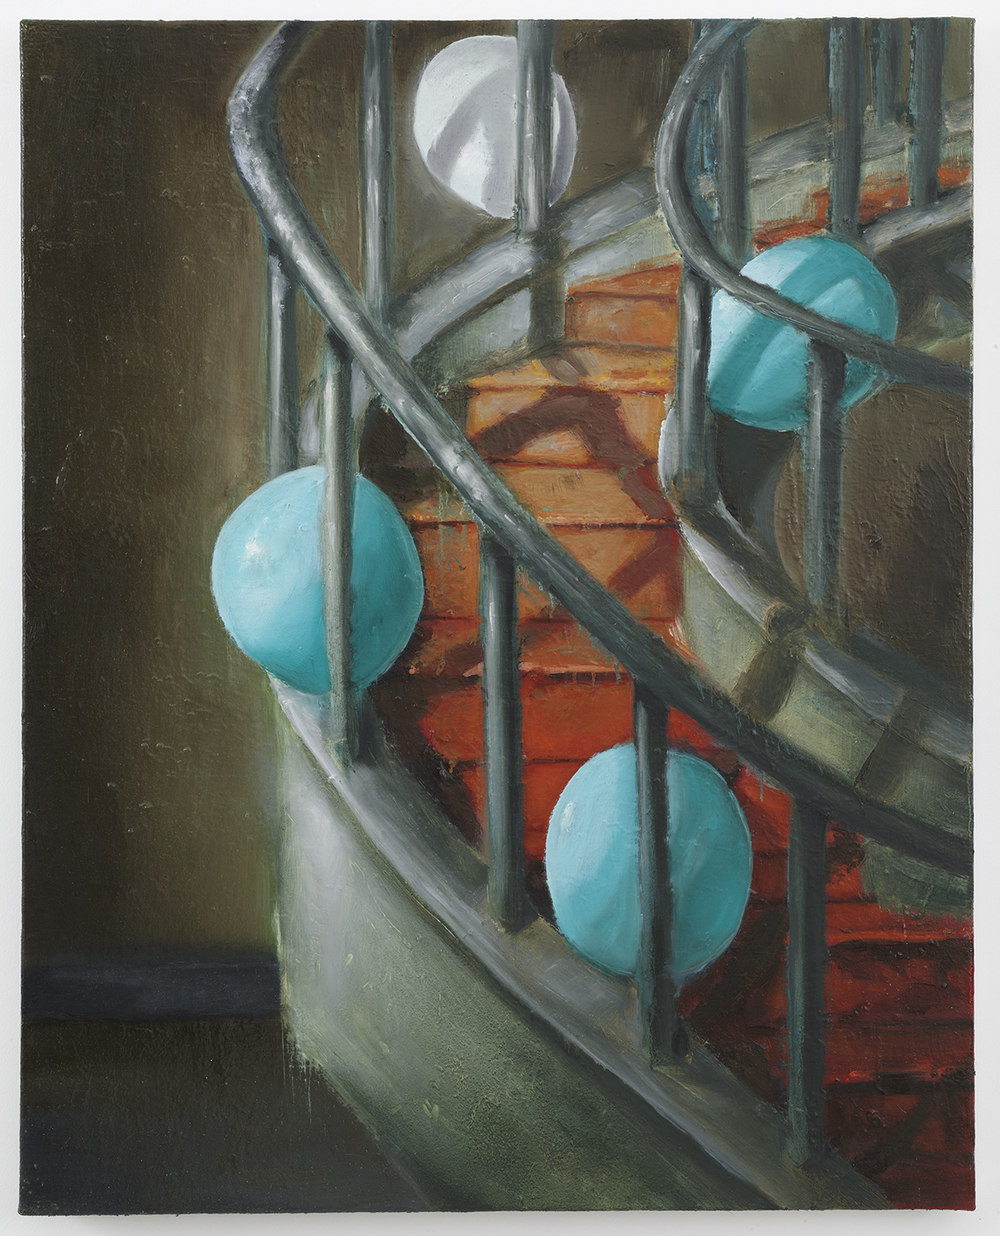 Cristof Yvorè,  Untitled,  008, oil on canvas, 36 1/2 x 29 1/4 inches